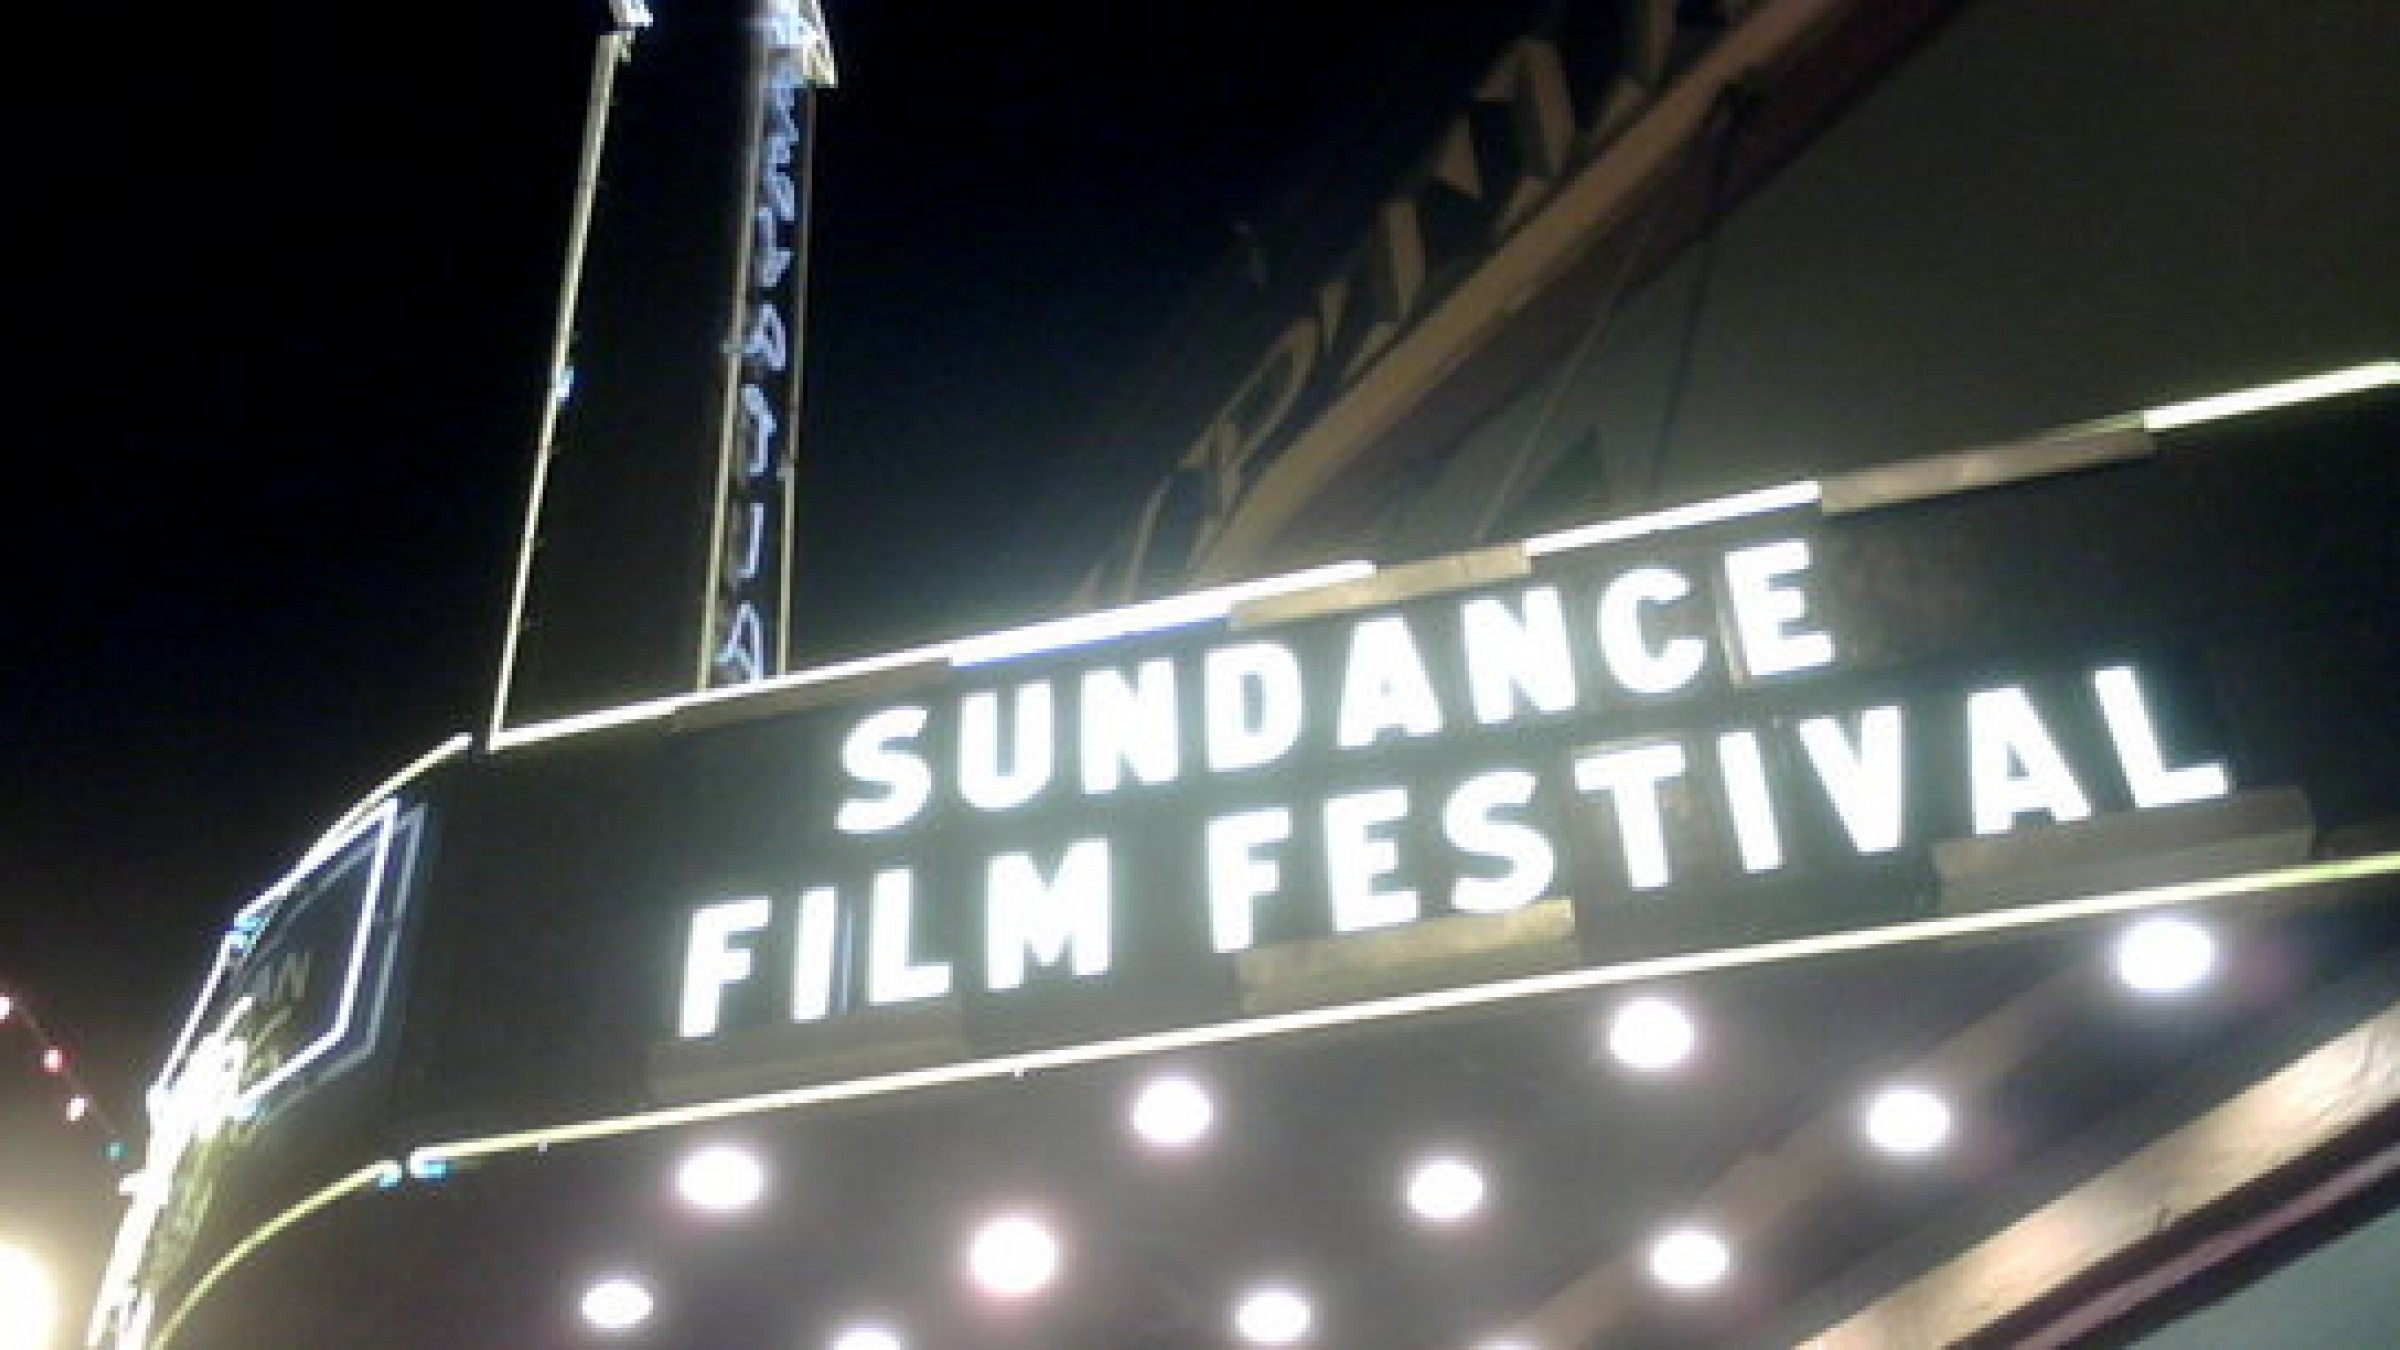 15 Sundance Short Films, Right Here, Right Now, For Your Viewing Pleasure